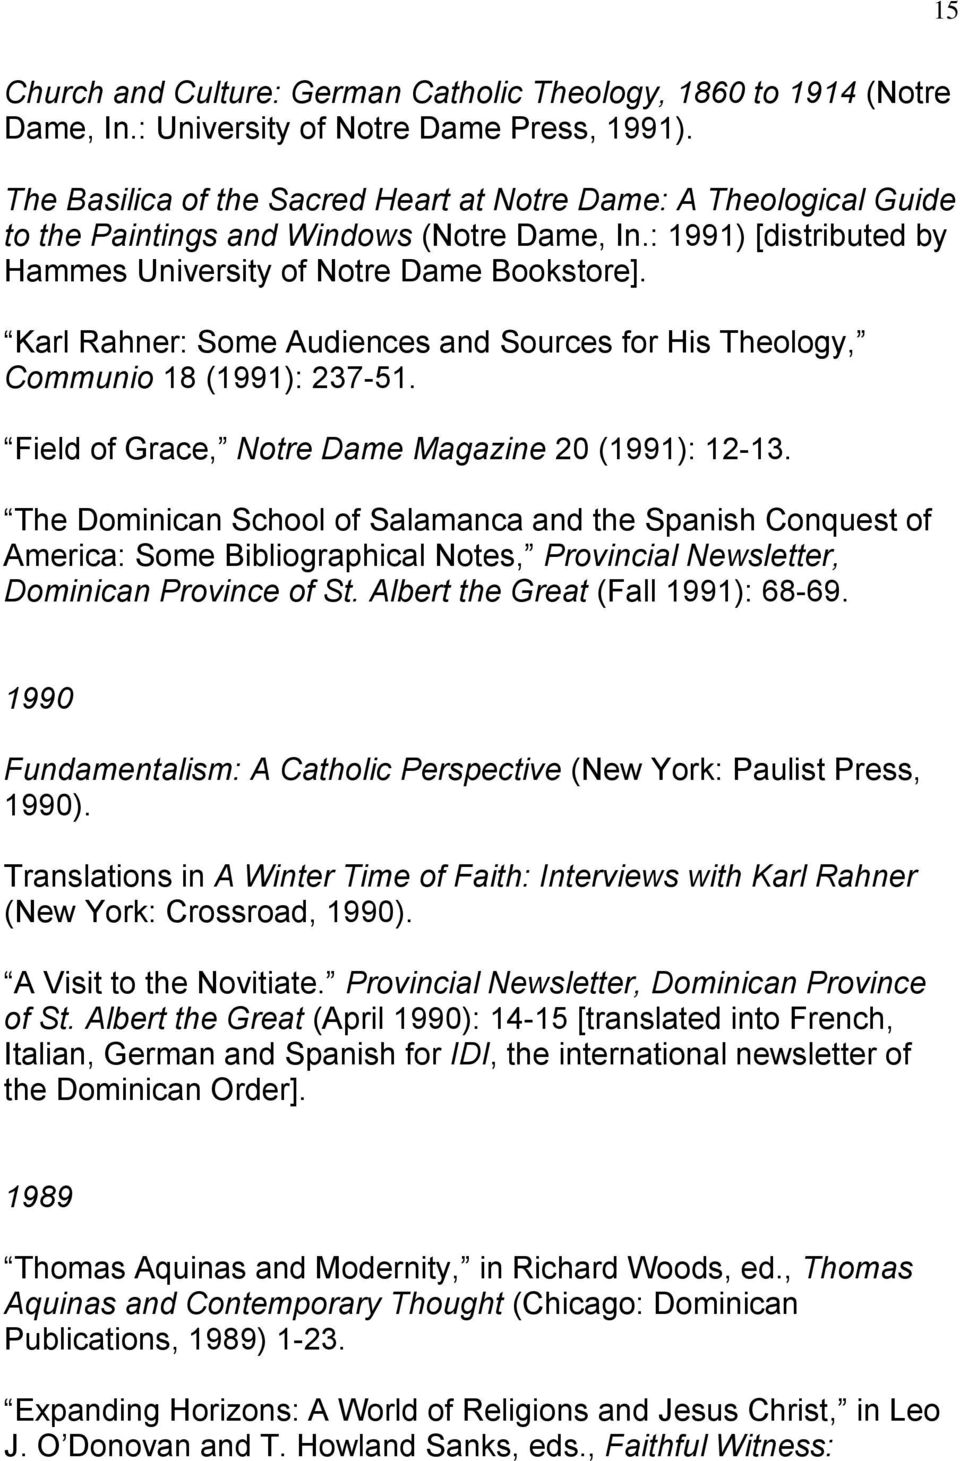 Karl Rahner: Some Audiences and Sources for His Theology, Communio 18 (1991): 237-51. Field of Grace, Notre Dame Magazine 20 (1991): 12-13.